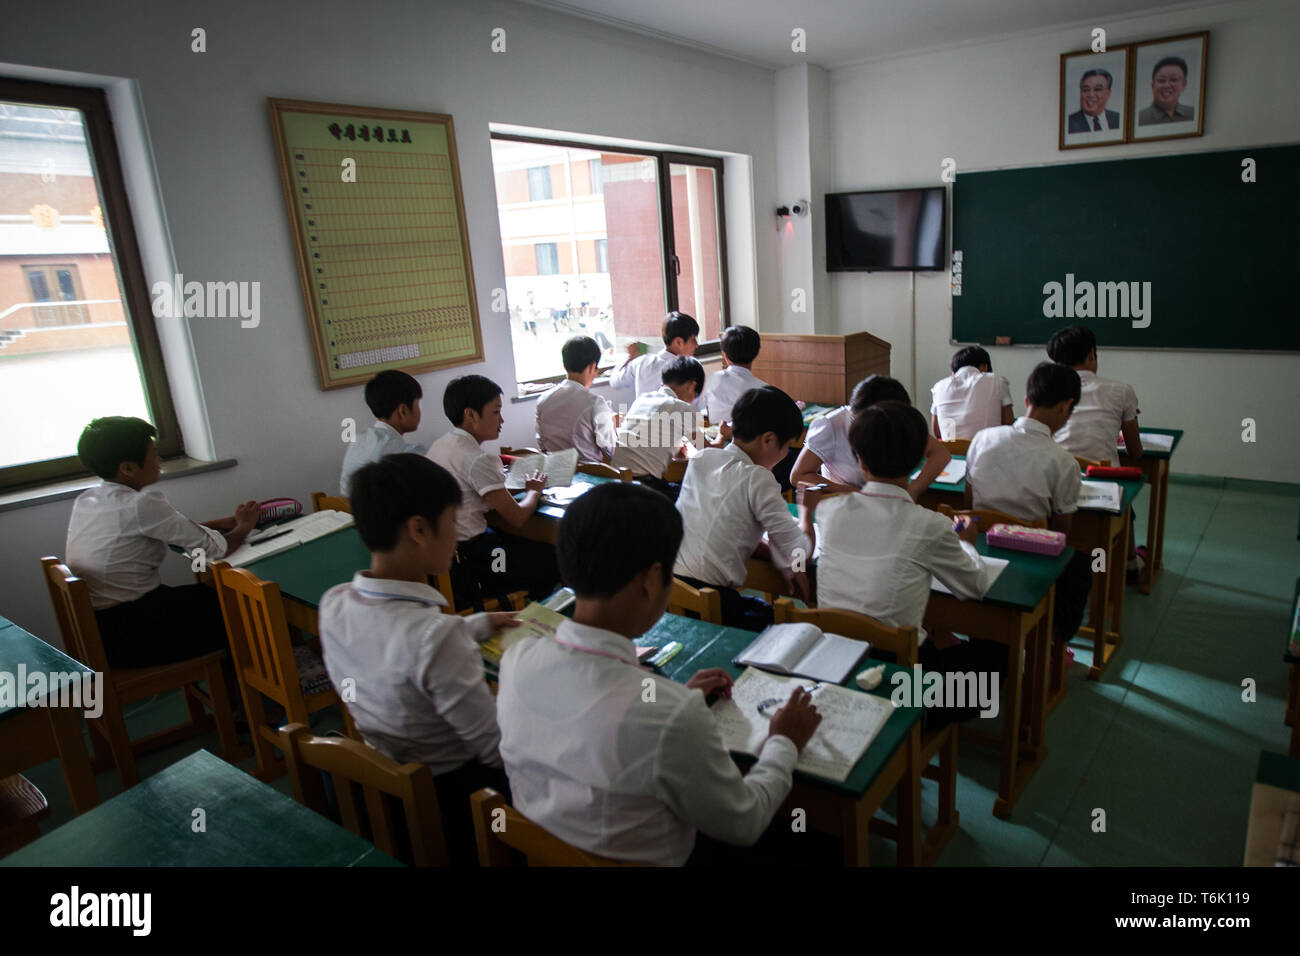 Portraits of Kim Il Sung and Kim Jong Il in a classroom of children in Pyongyang, North Korea. - Stock Image